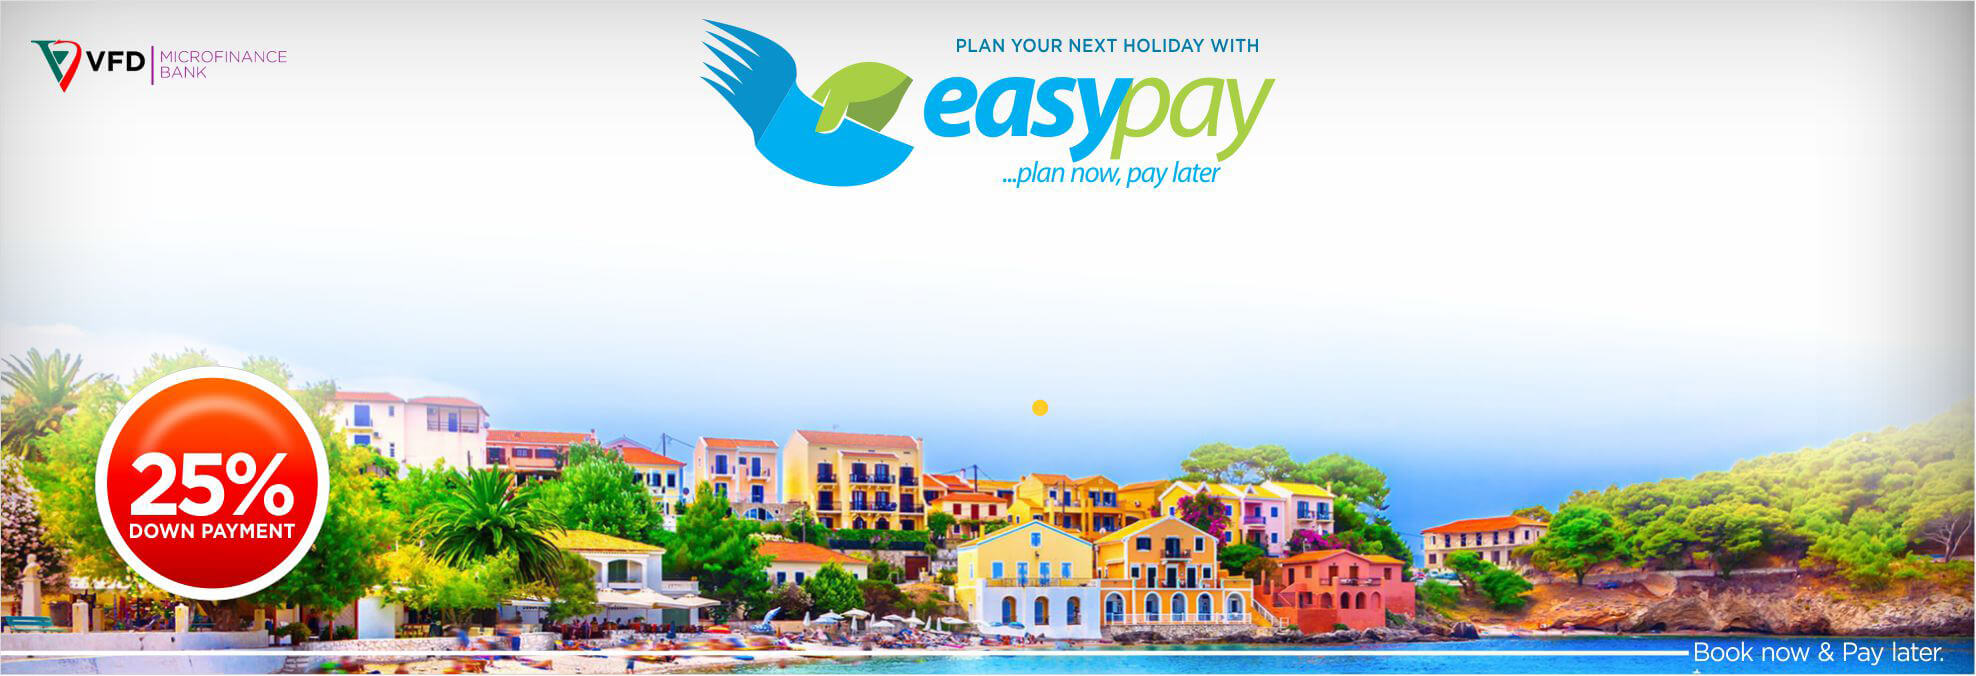 EASYPAY Travel Payment Scheme